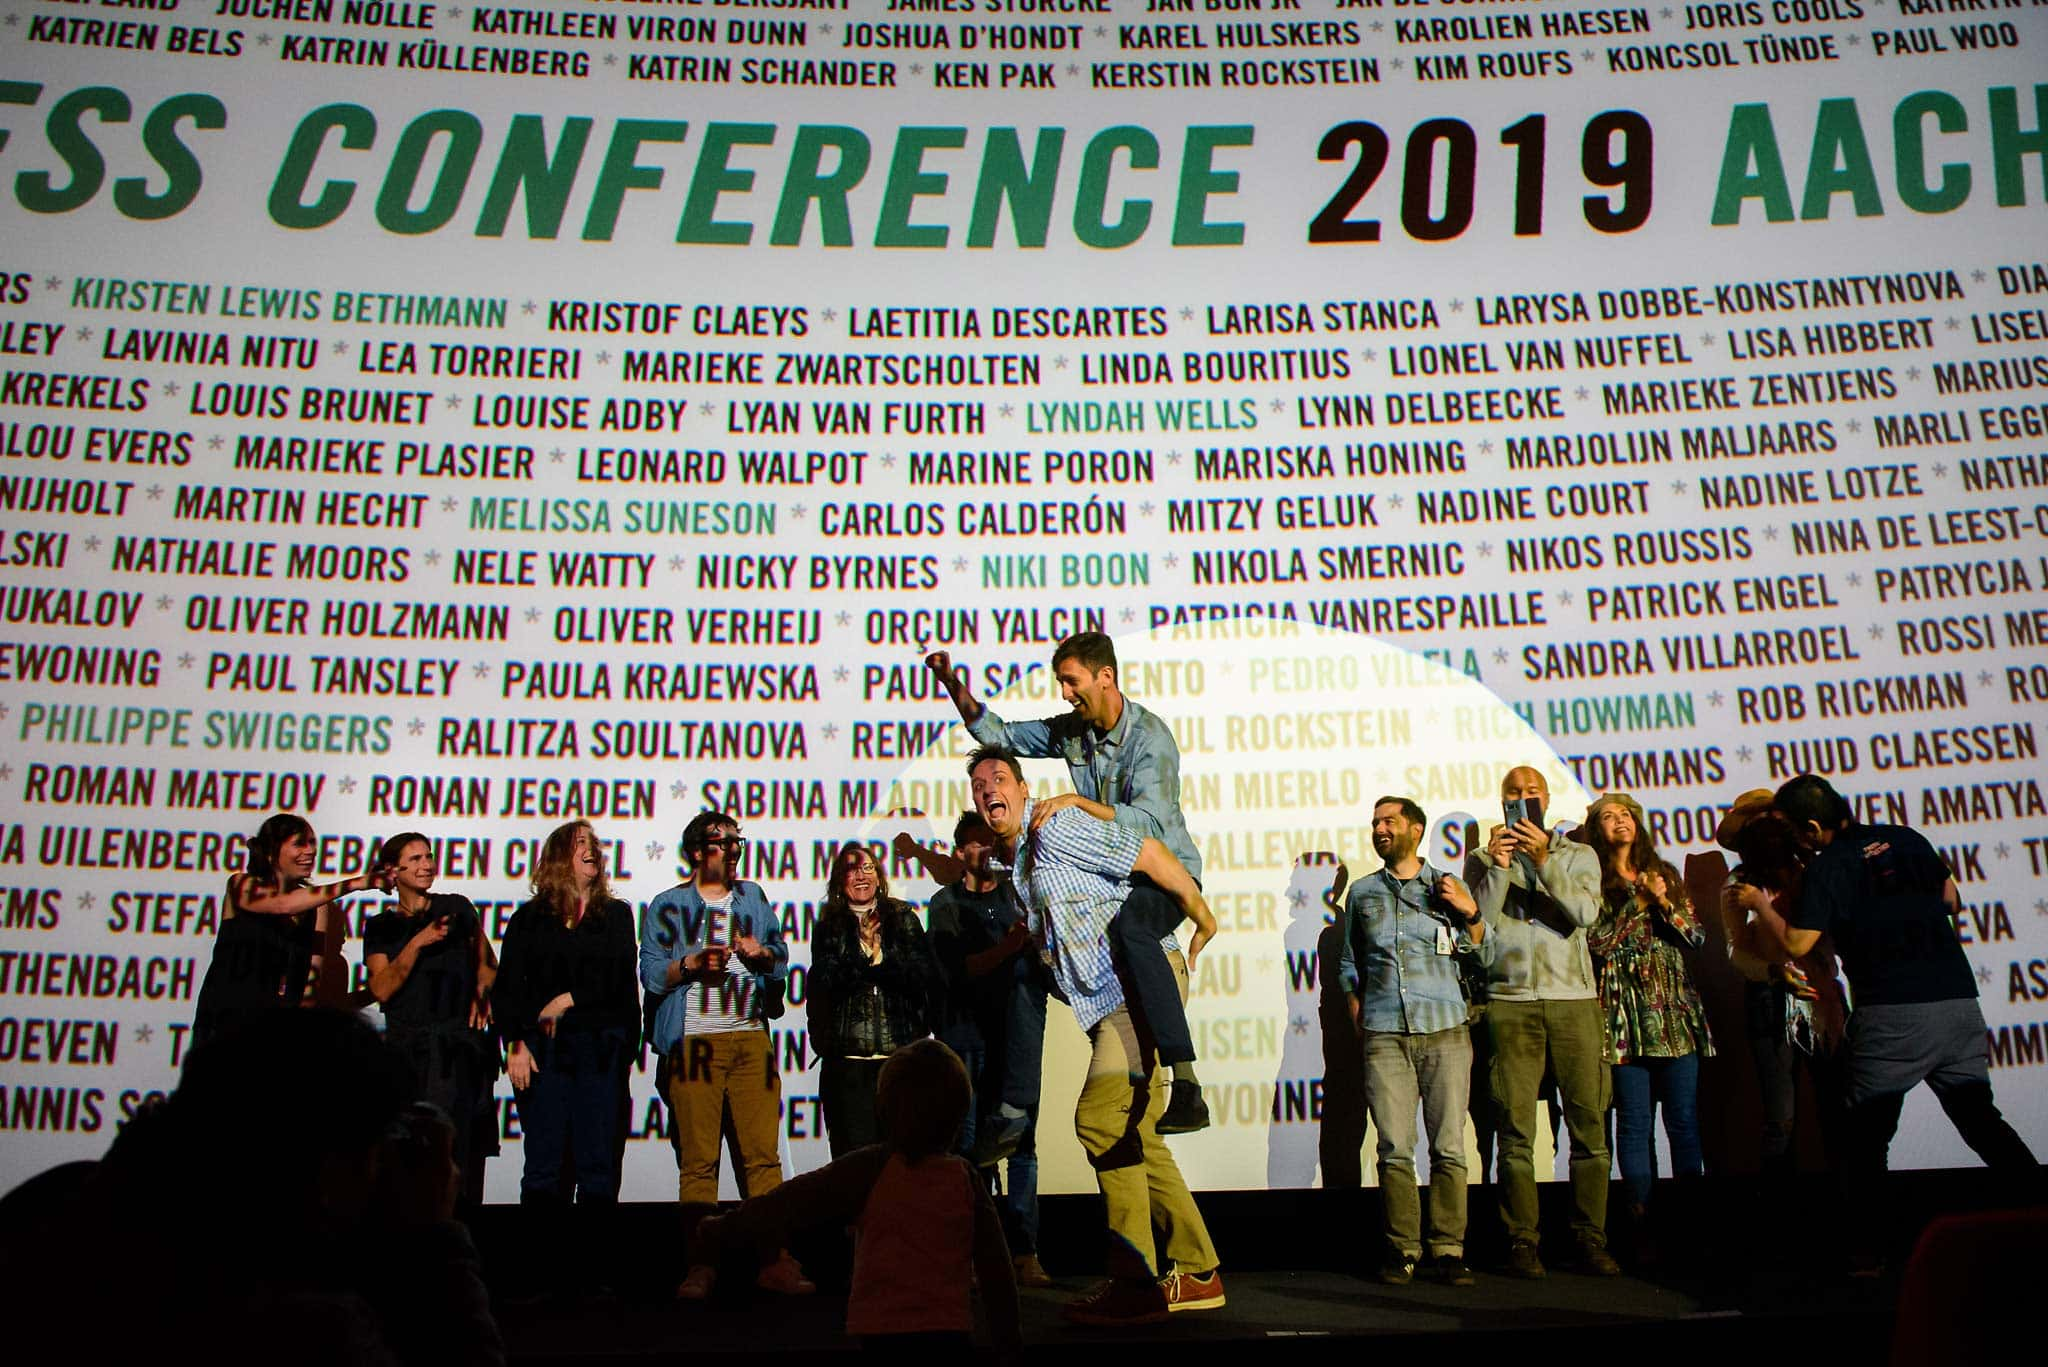 The final farewell! Speakers line up with Huy to thank everyone for coming to Fearless Conference 2019! Then my new 'brother from another mother', Pedro Viela, rides me across the stage!